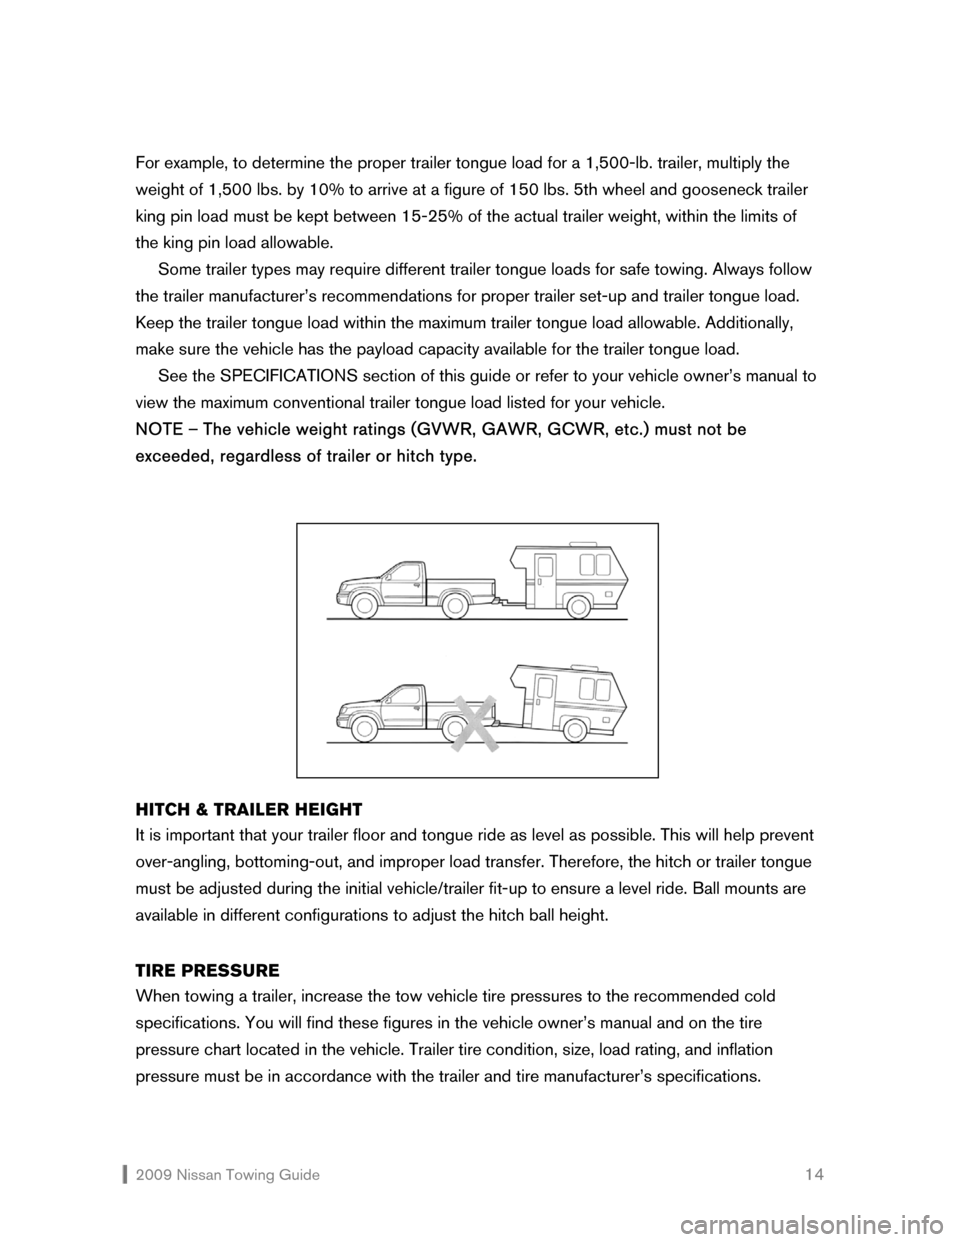 NISSAN VERSA HATCHBACK 2009 1.G Towing Guide, Page 15